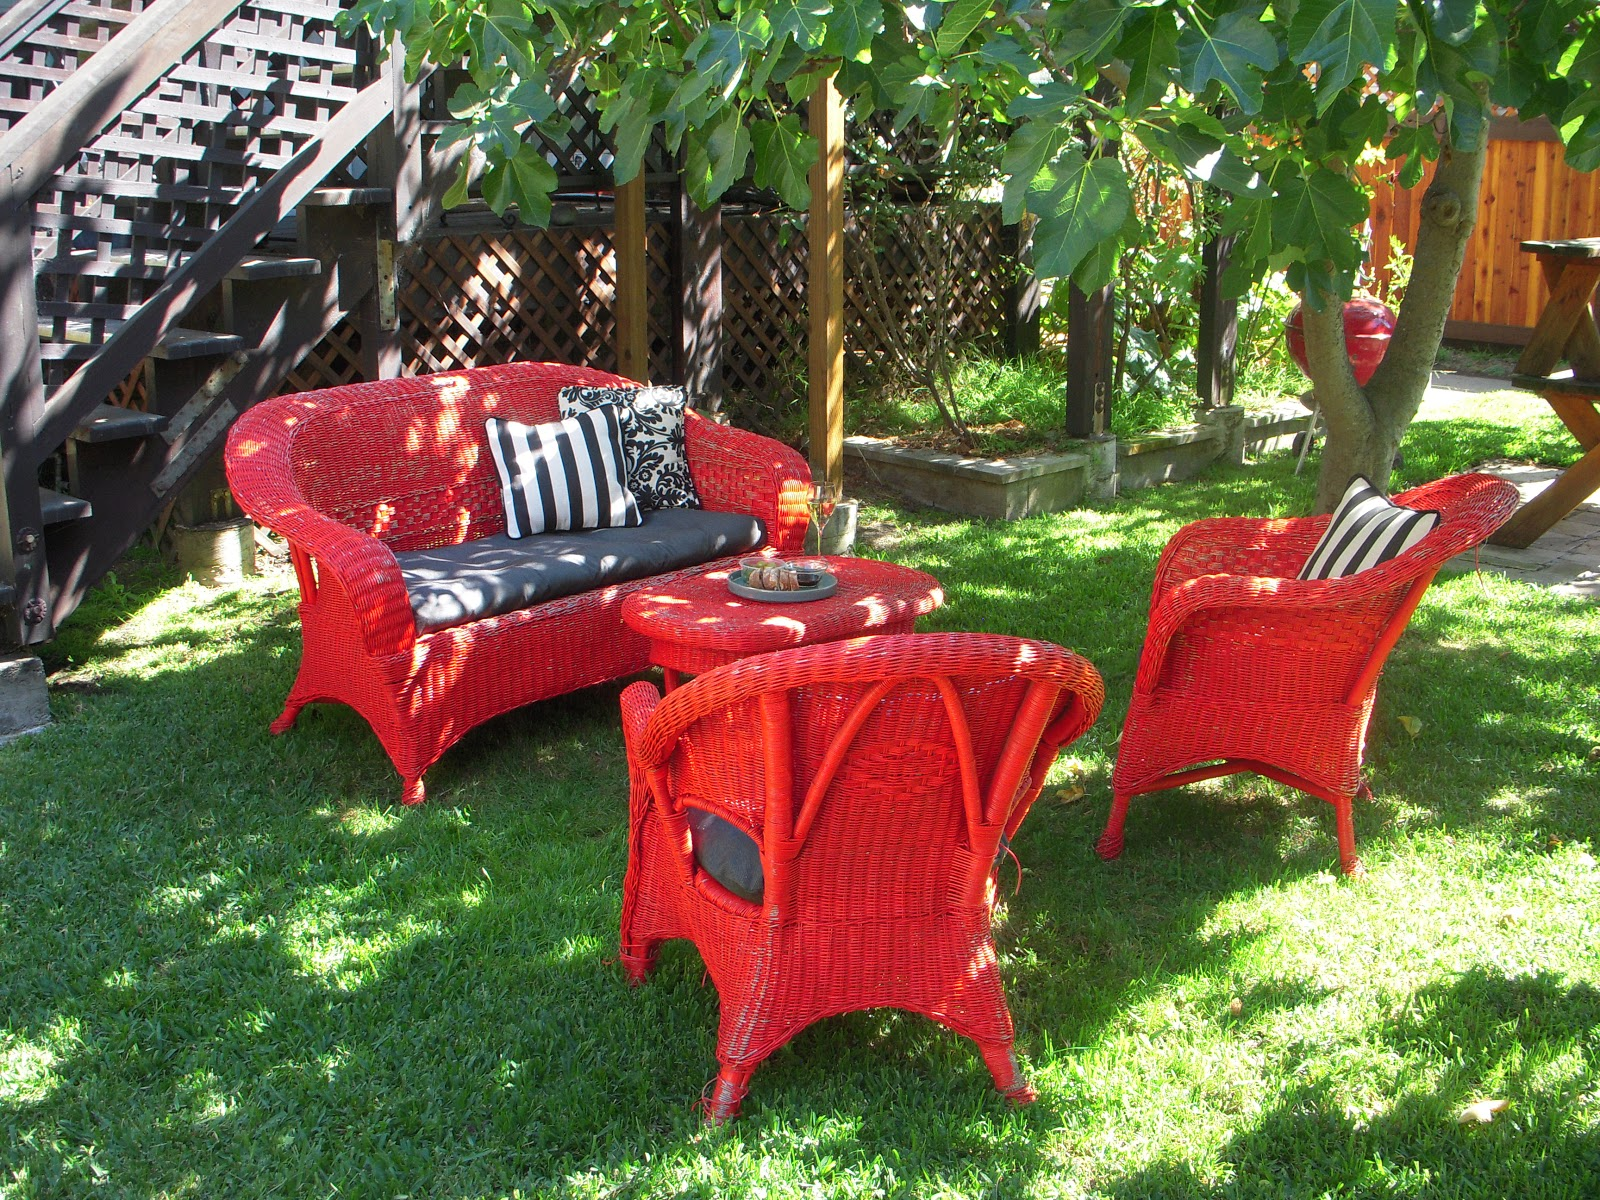 Lingering daydreams diy officially refurbished wicker - Garden furniture colour ideas ...